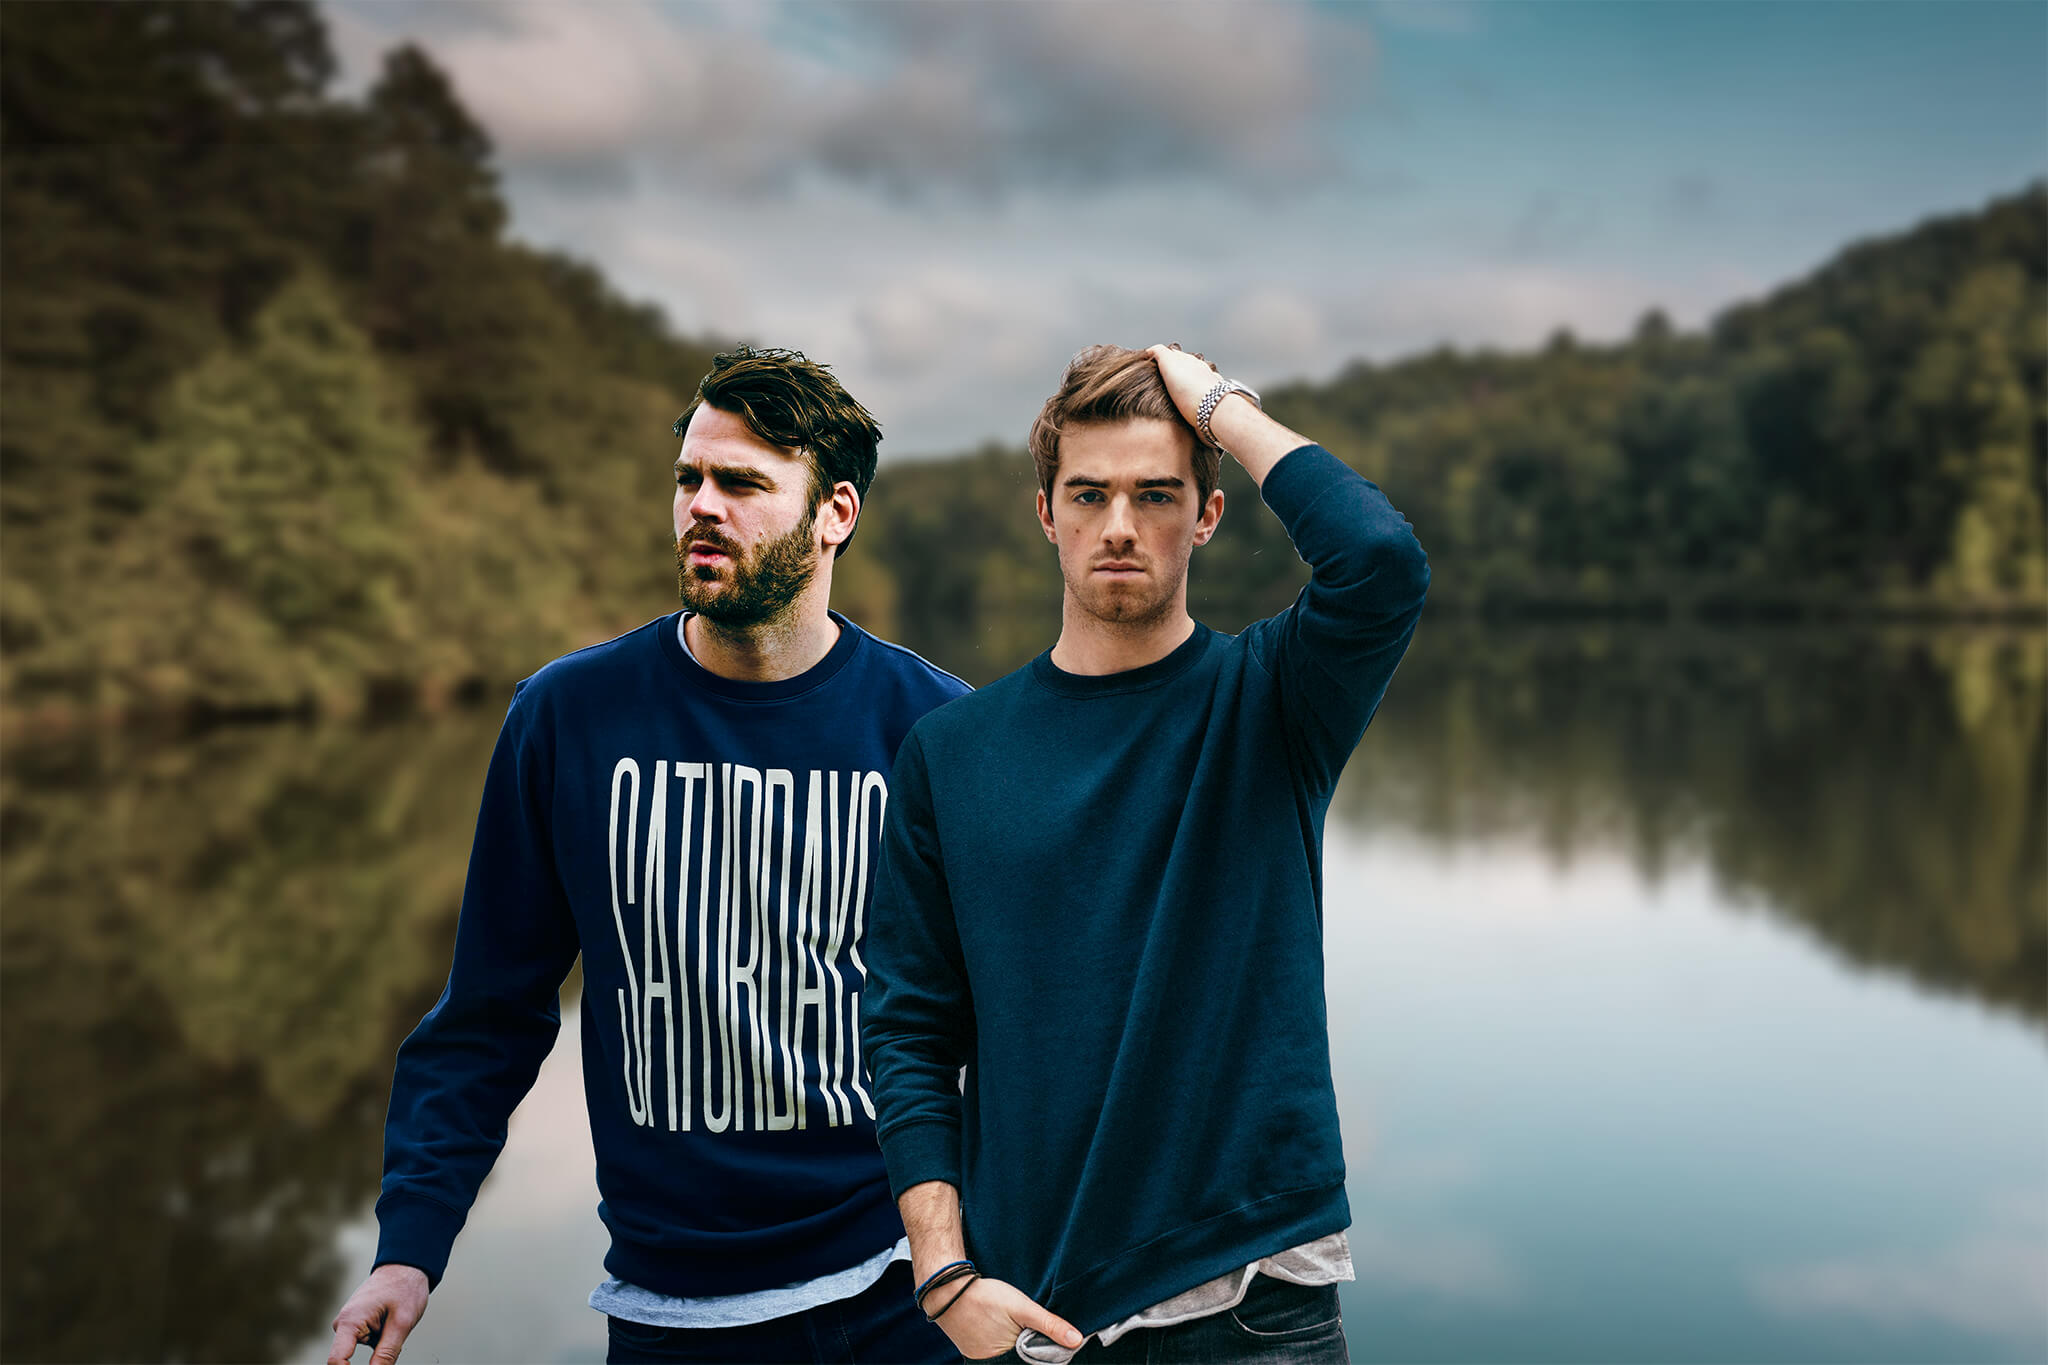 16 The Chainsmokers HD Wallpapers Background Images   Wallpaper 2048x1365